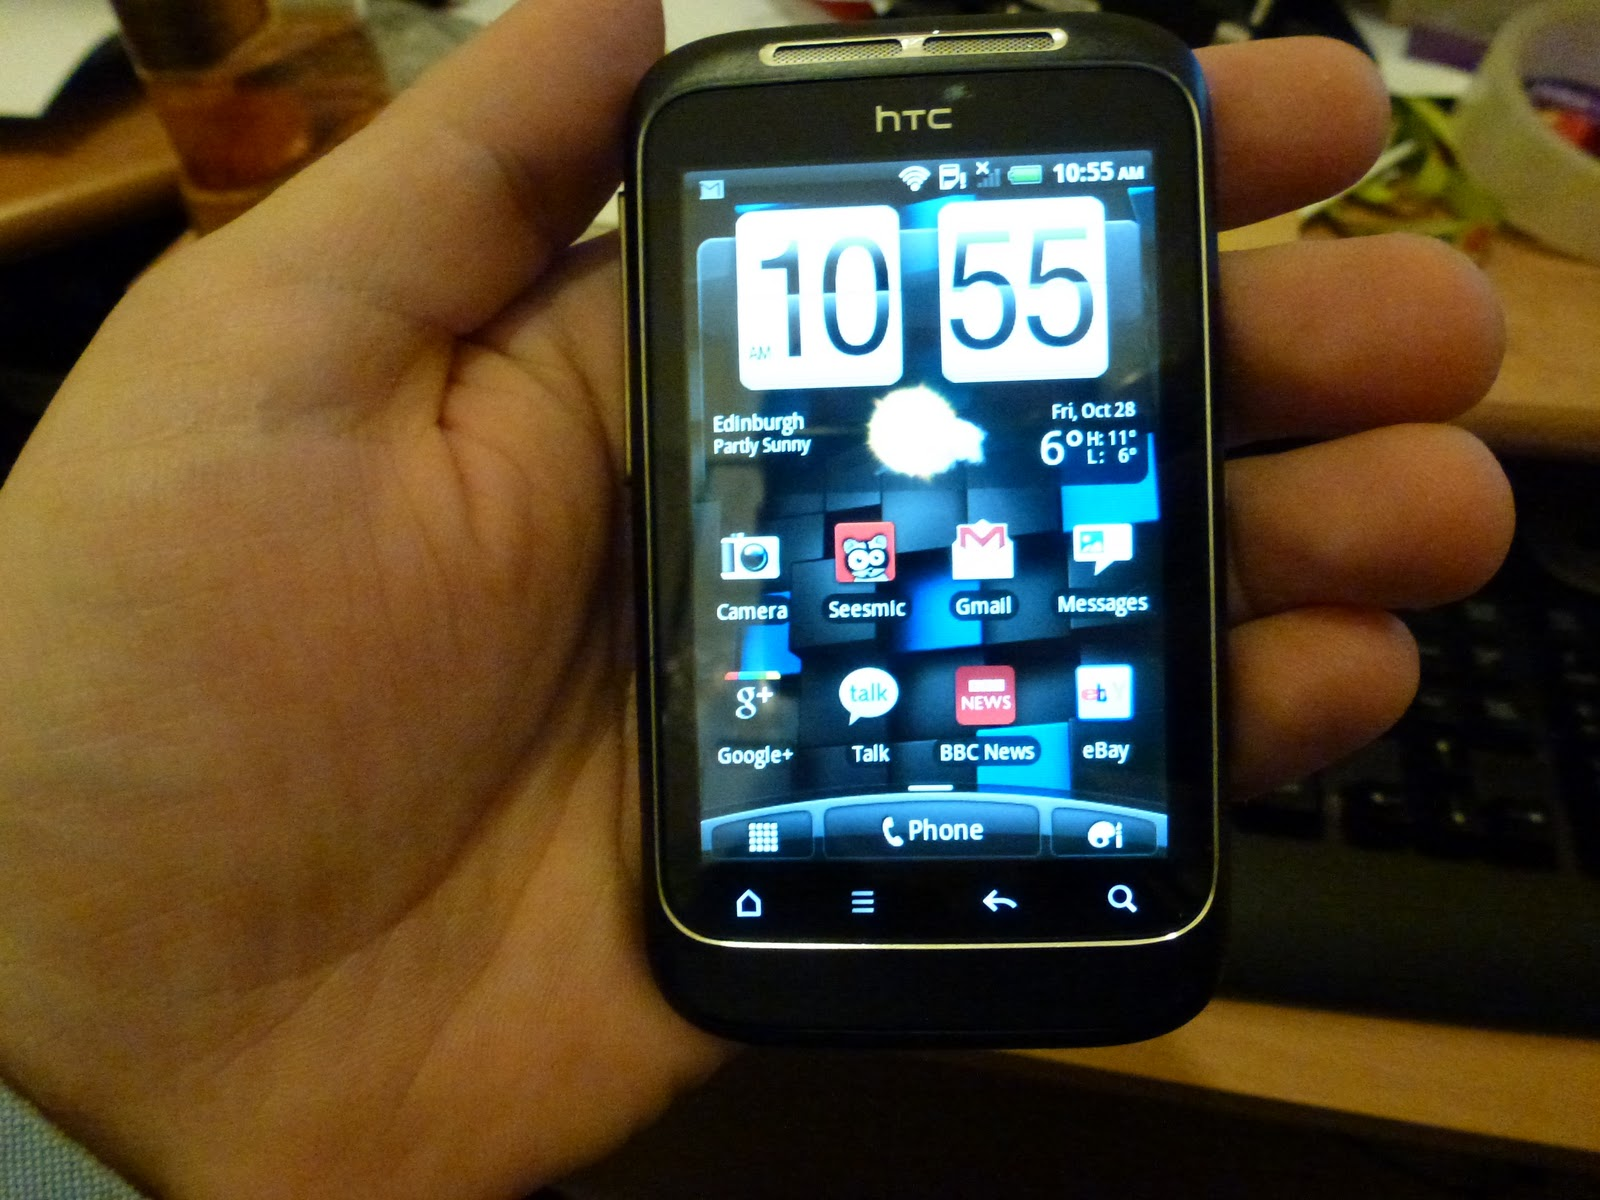 How to transfer photos from htc wildfire to computer Download HTC Sync Manager